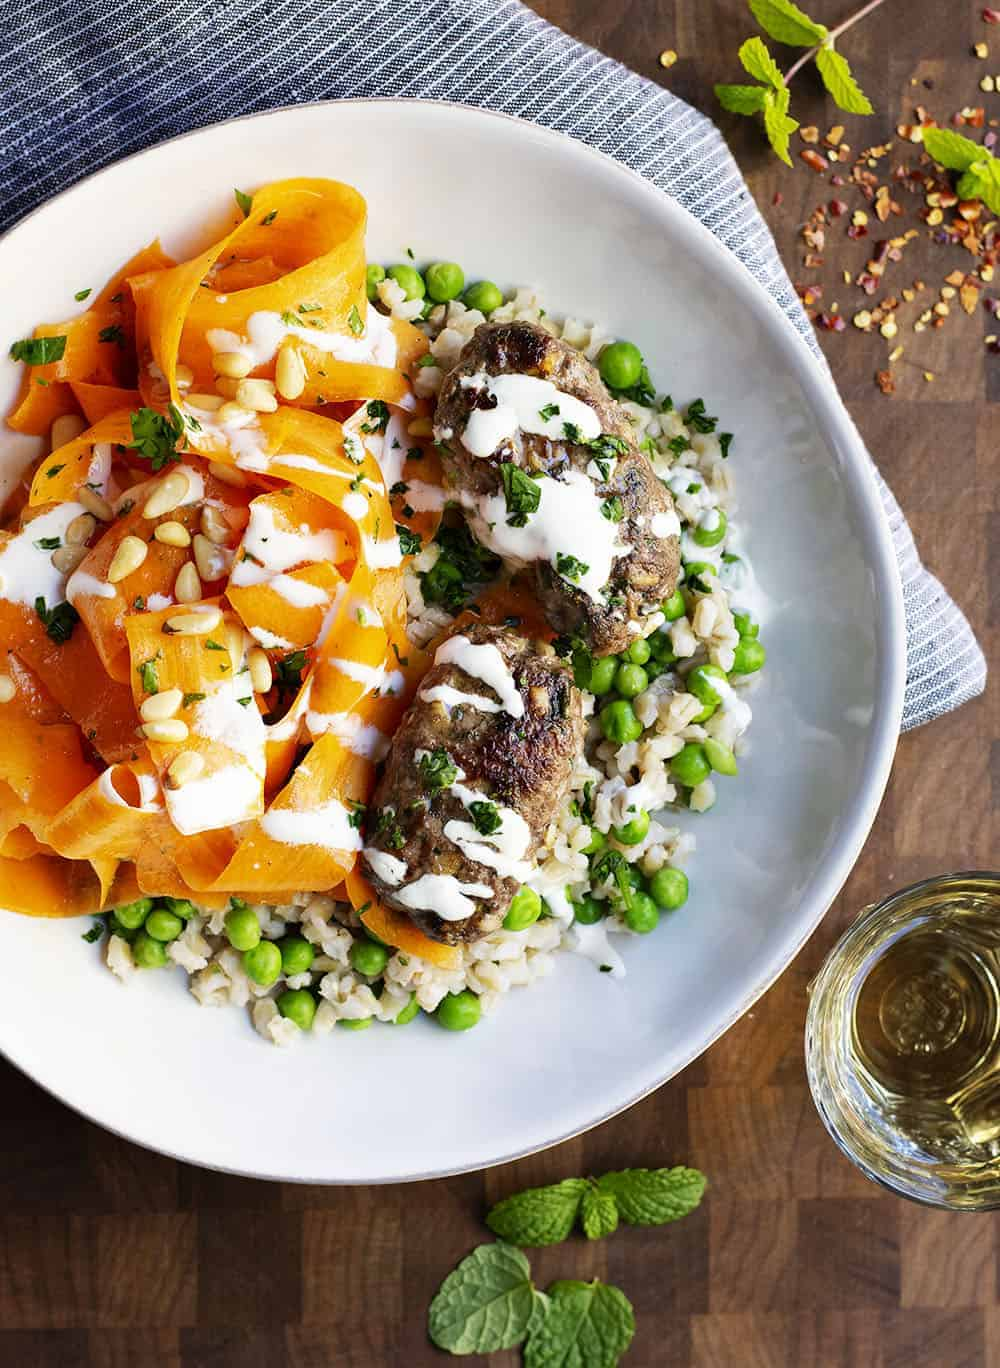 Lamb Kofta served with carrot salad and barley with peas in a white bowl